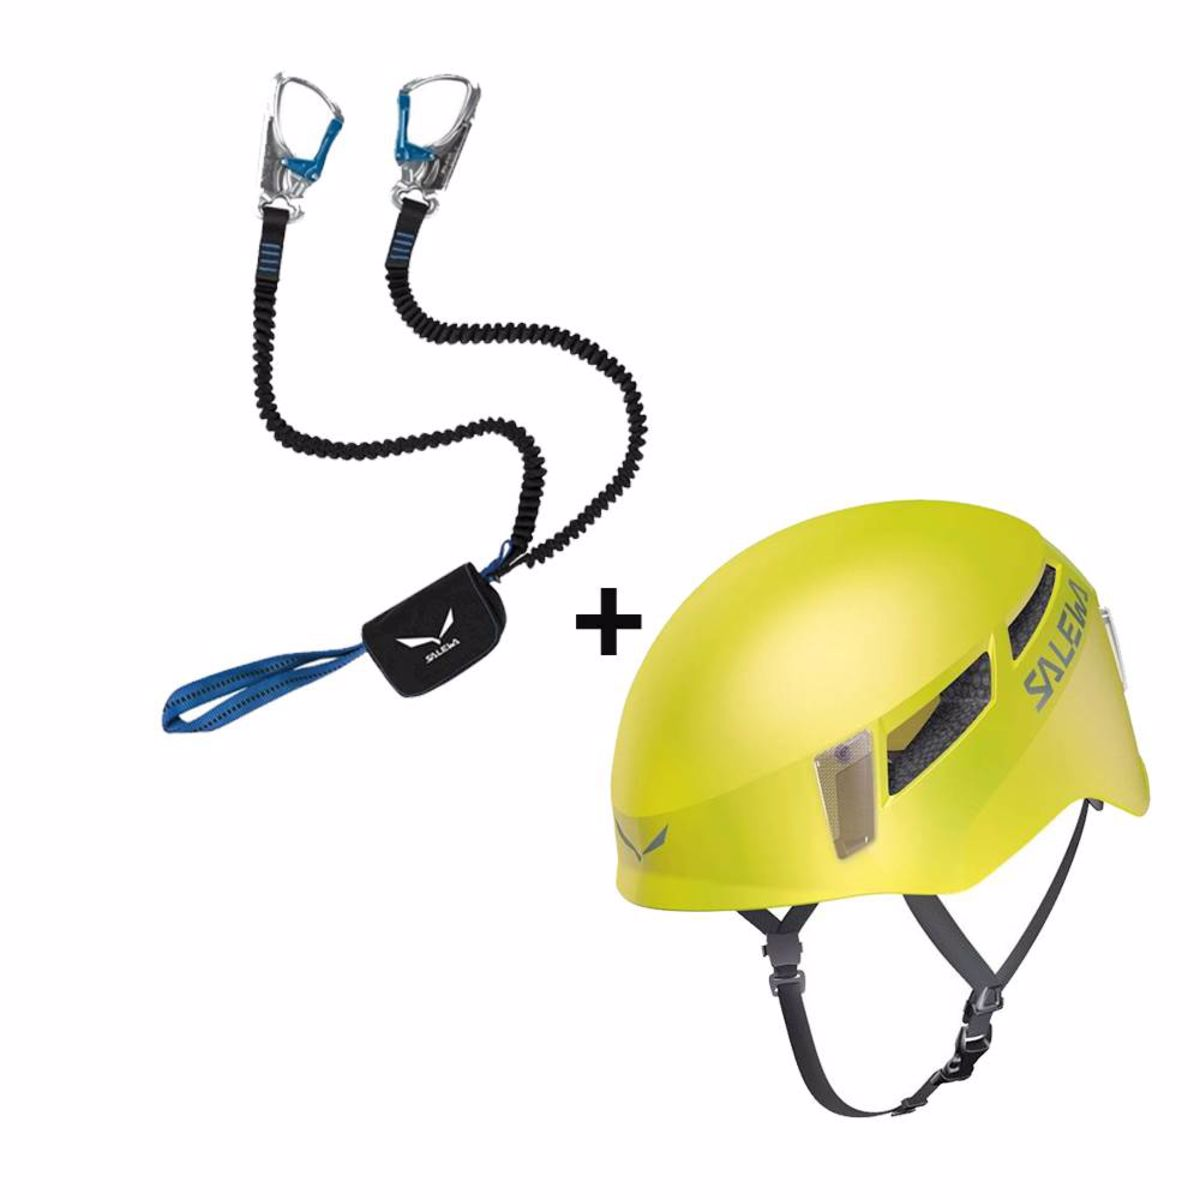 SALEWA VIA FERRATA SET PREMIUM ATTAC + prilba salewa Pura 6d3a2b555da